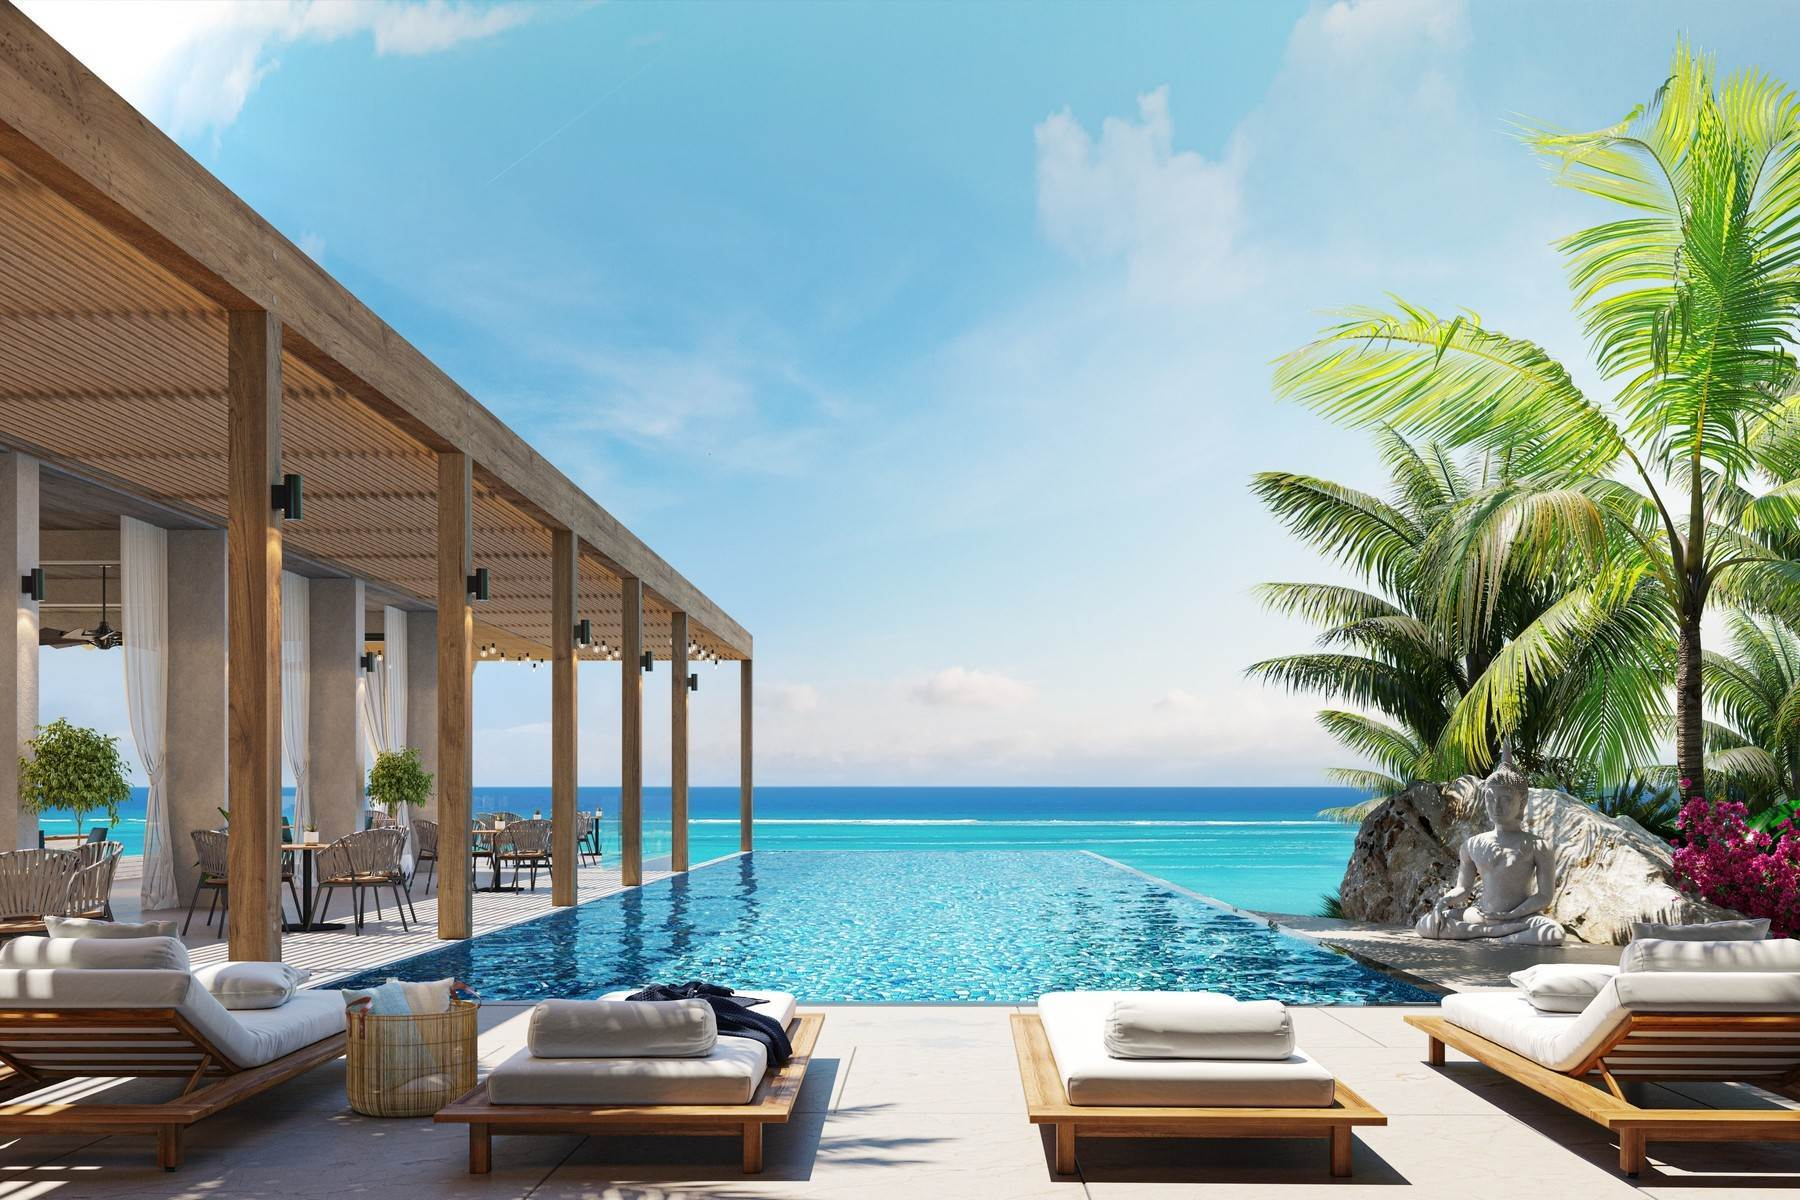 6. Condominiums for Sale at The Bight, Providenciales Turks And Caicos Islands